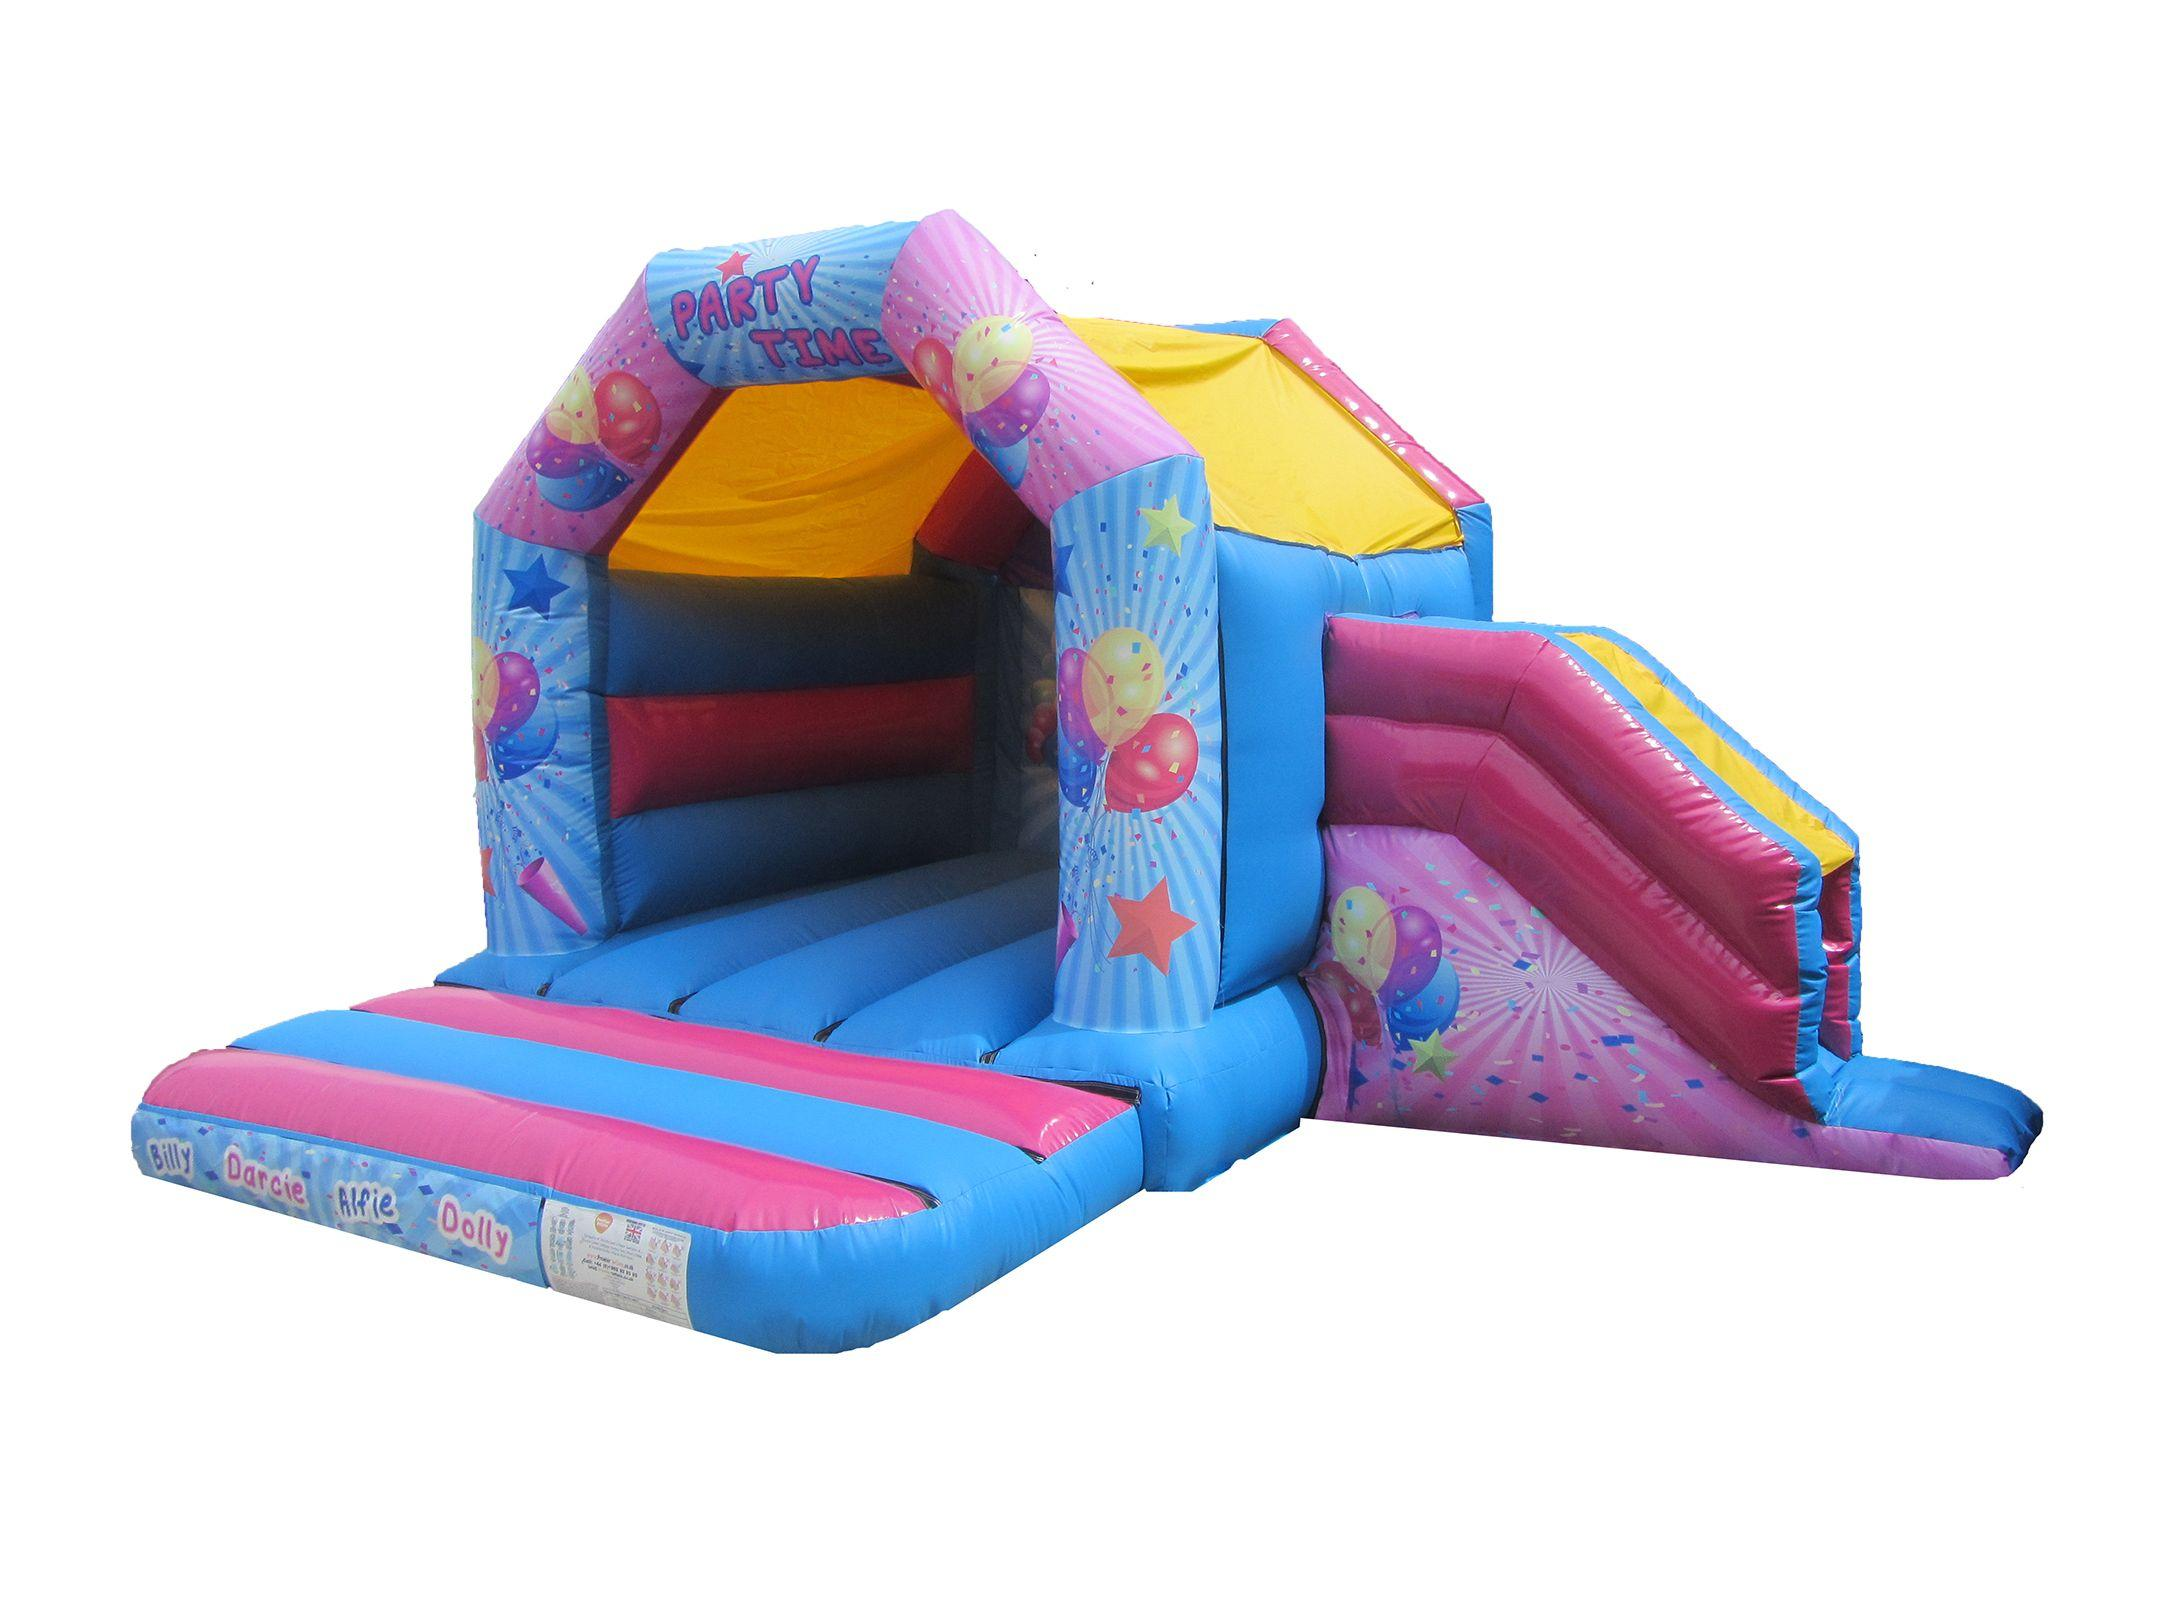 Unisex Party Combo Bouncy Castle